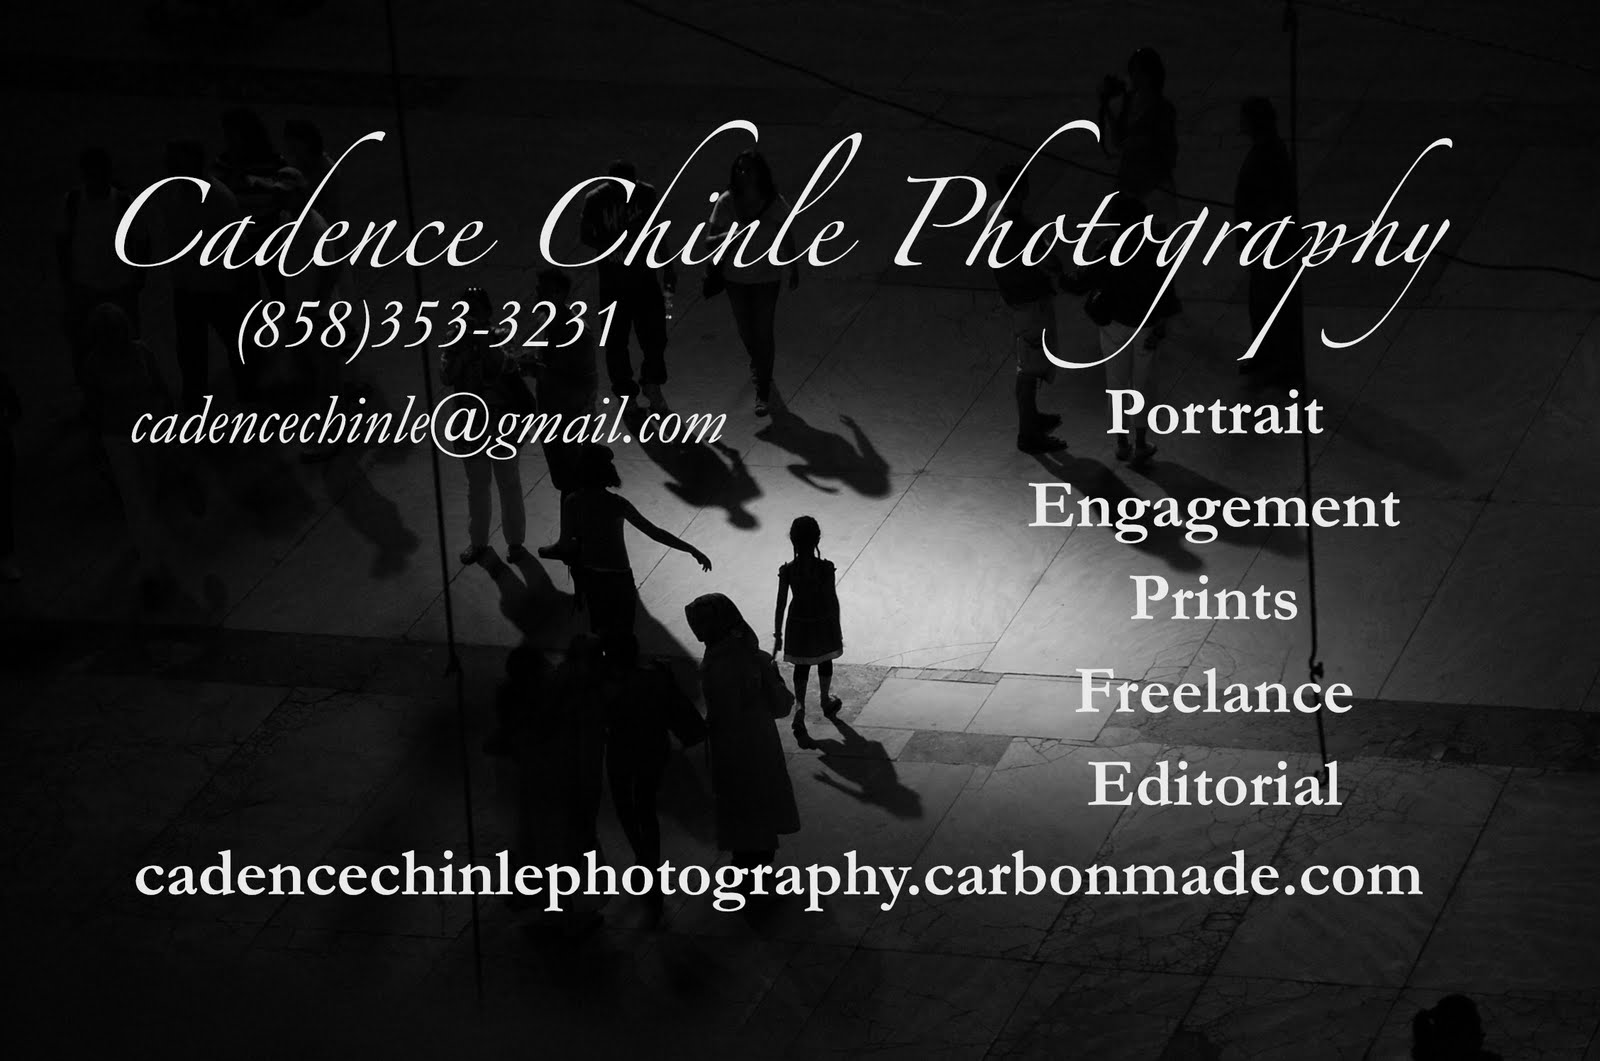 Cadence chinle photography business cards finally have business cards out and circulating the santa cruz area aka coffee shops colourmoves